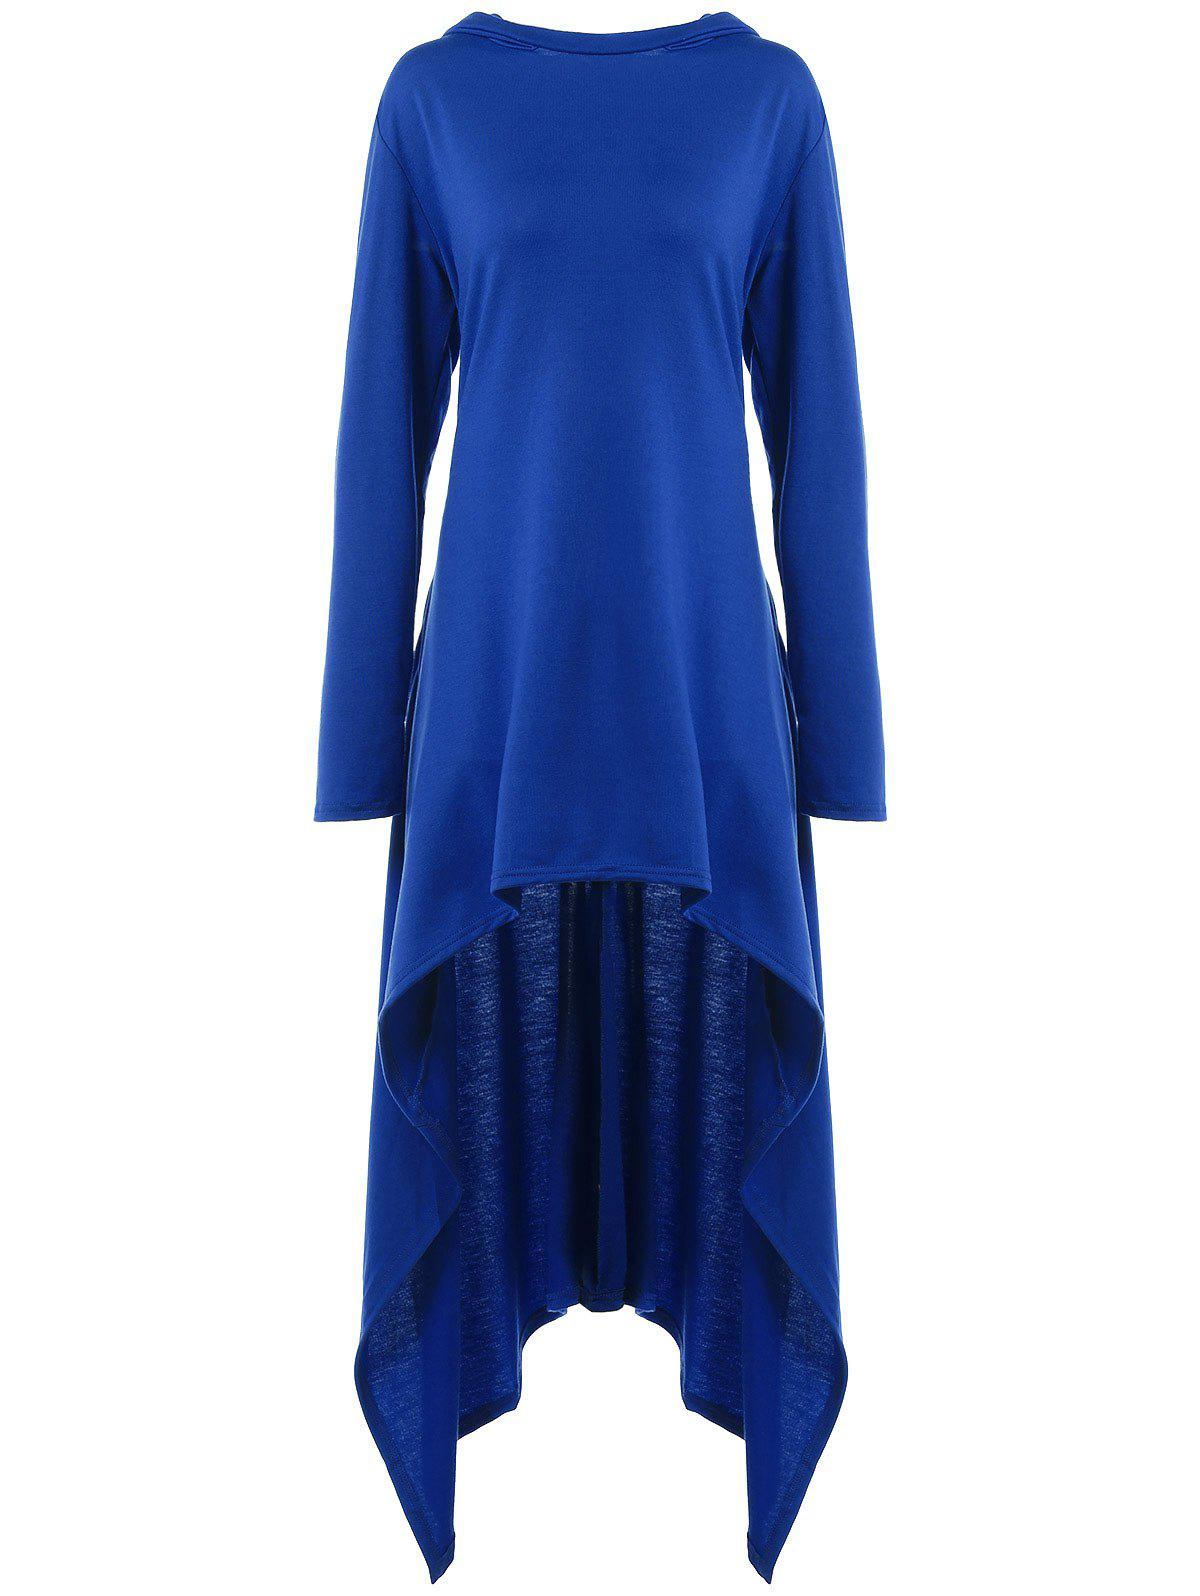 Buy High Low Hooded Dress with Long Sleeves